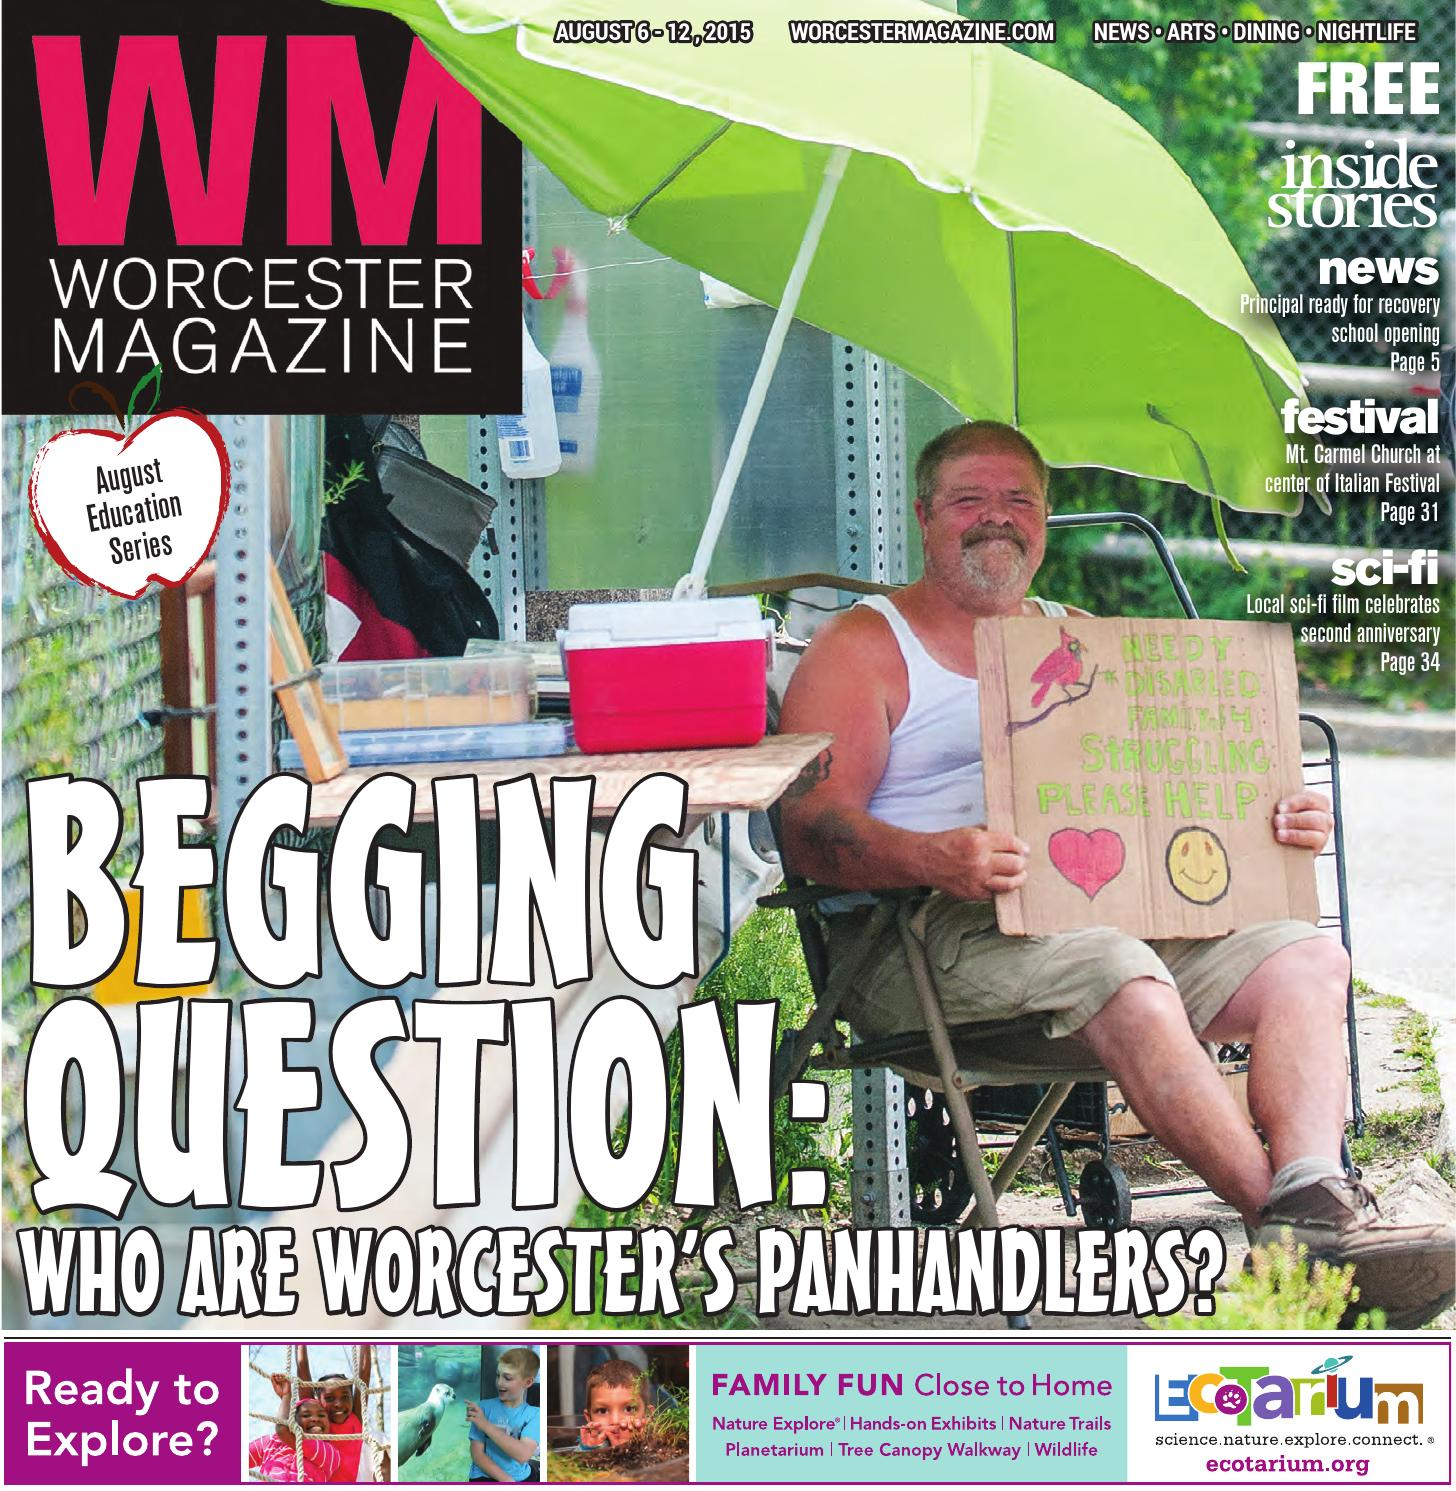 Worcester Magazine August 6 12 2015 by Worcester Magazine issuu